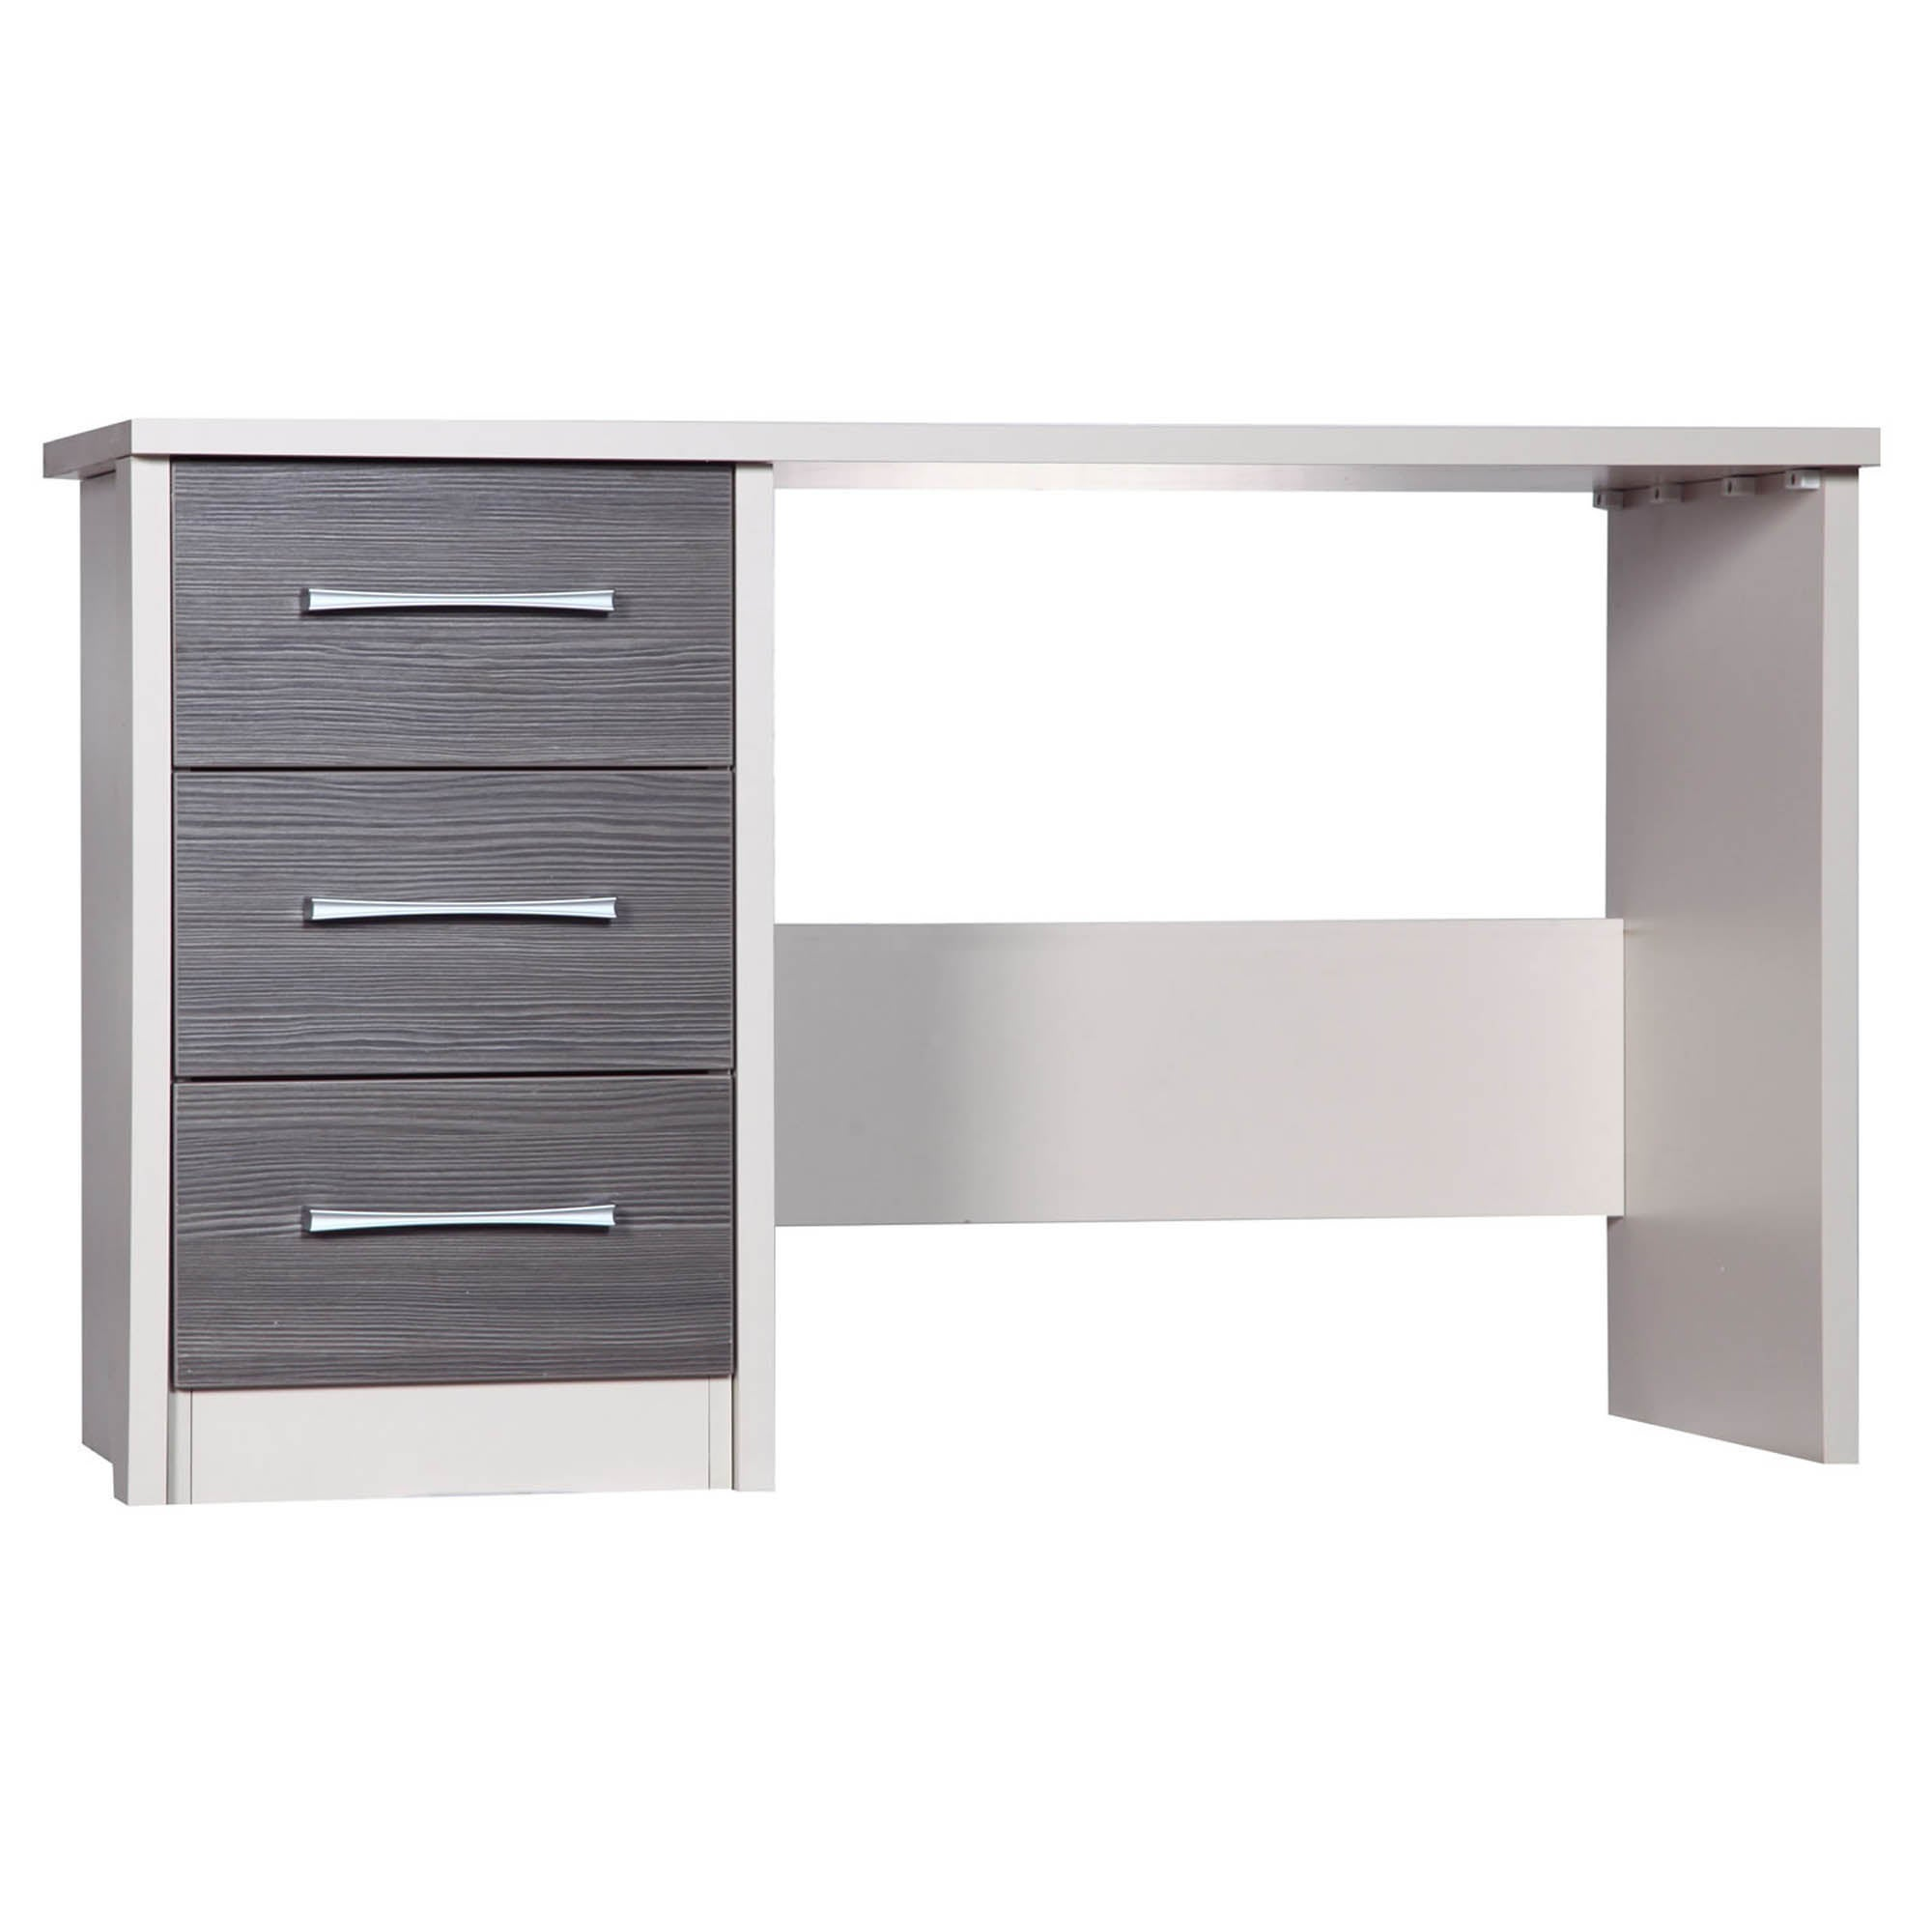 Photo of Avola grey dressing table charcoal -grey-